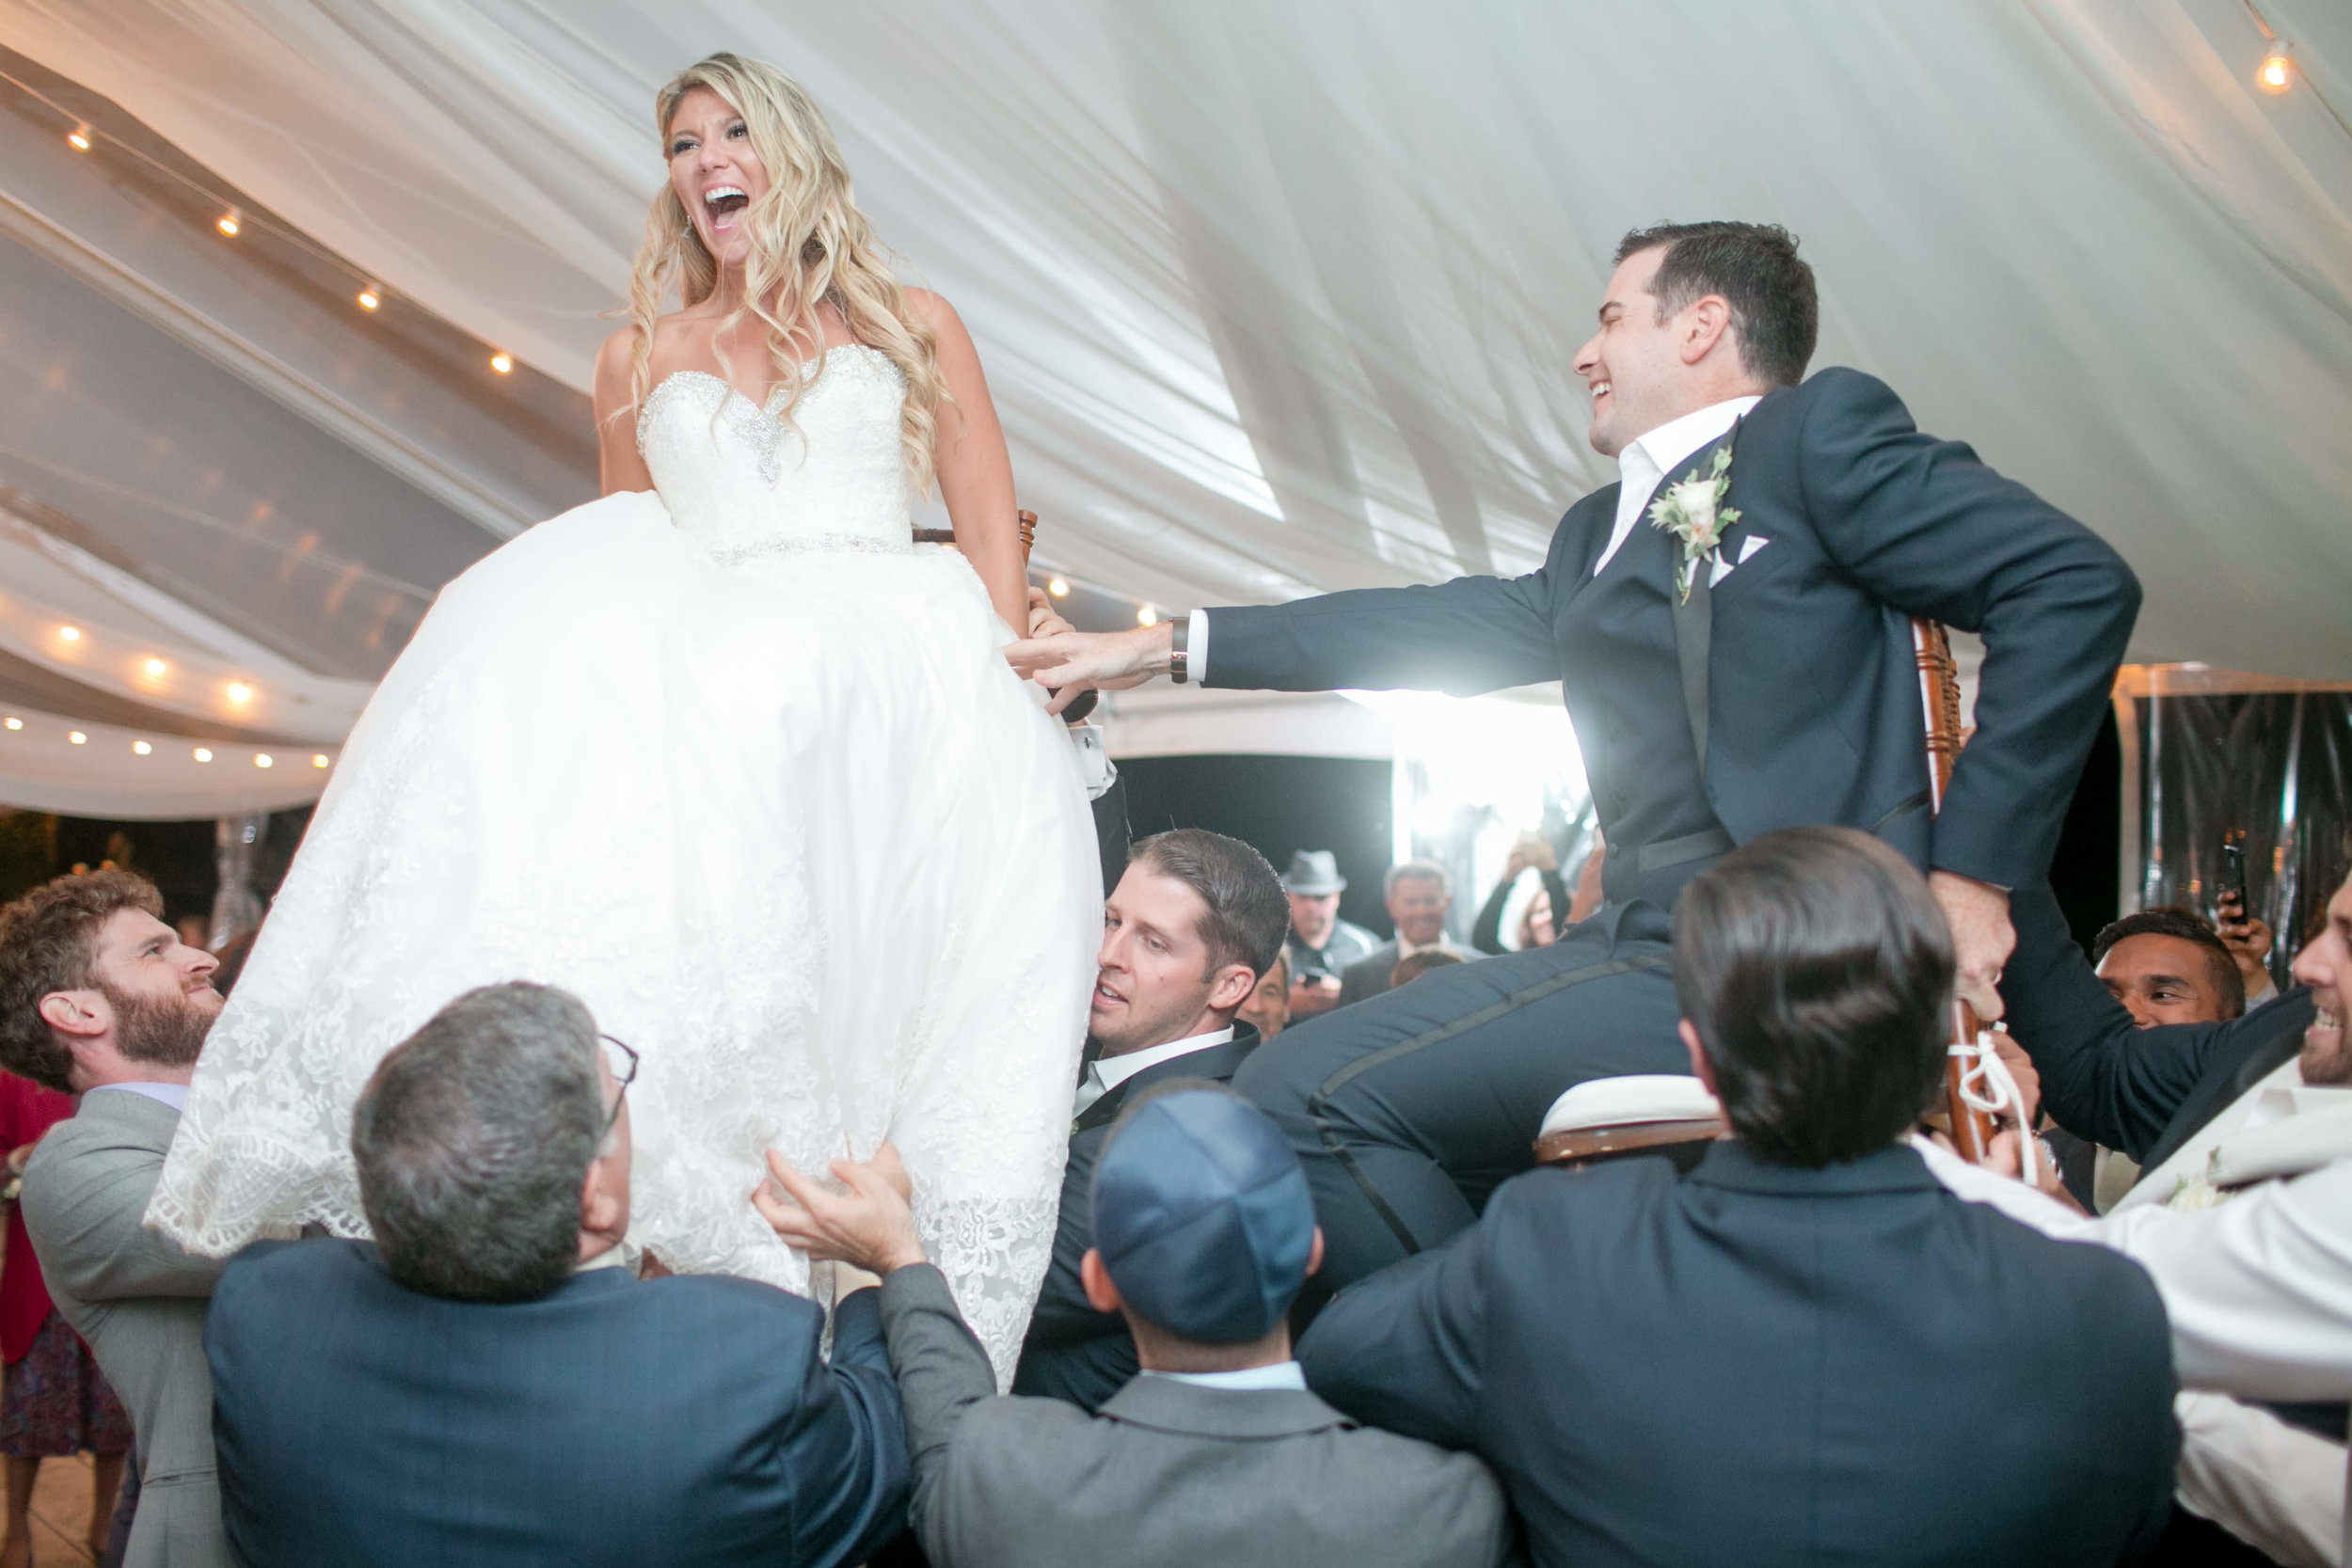 Ashley___Zac___Daniel_Ricci_Weddings___High_Res._Finals_644.jpg